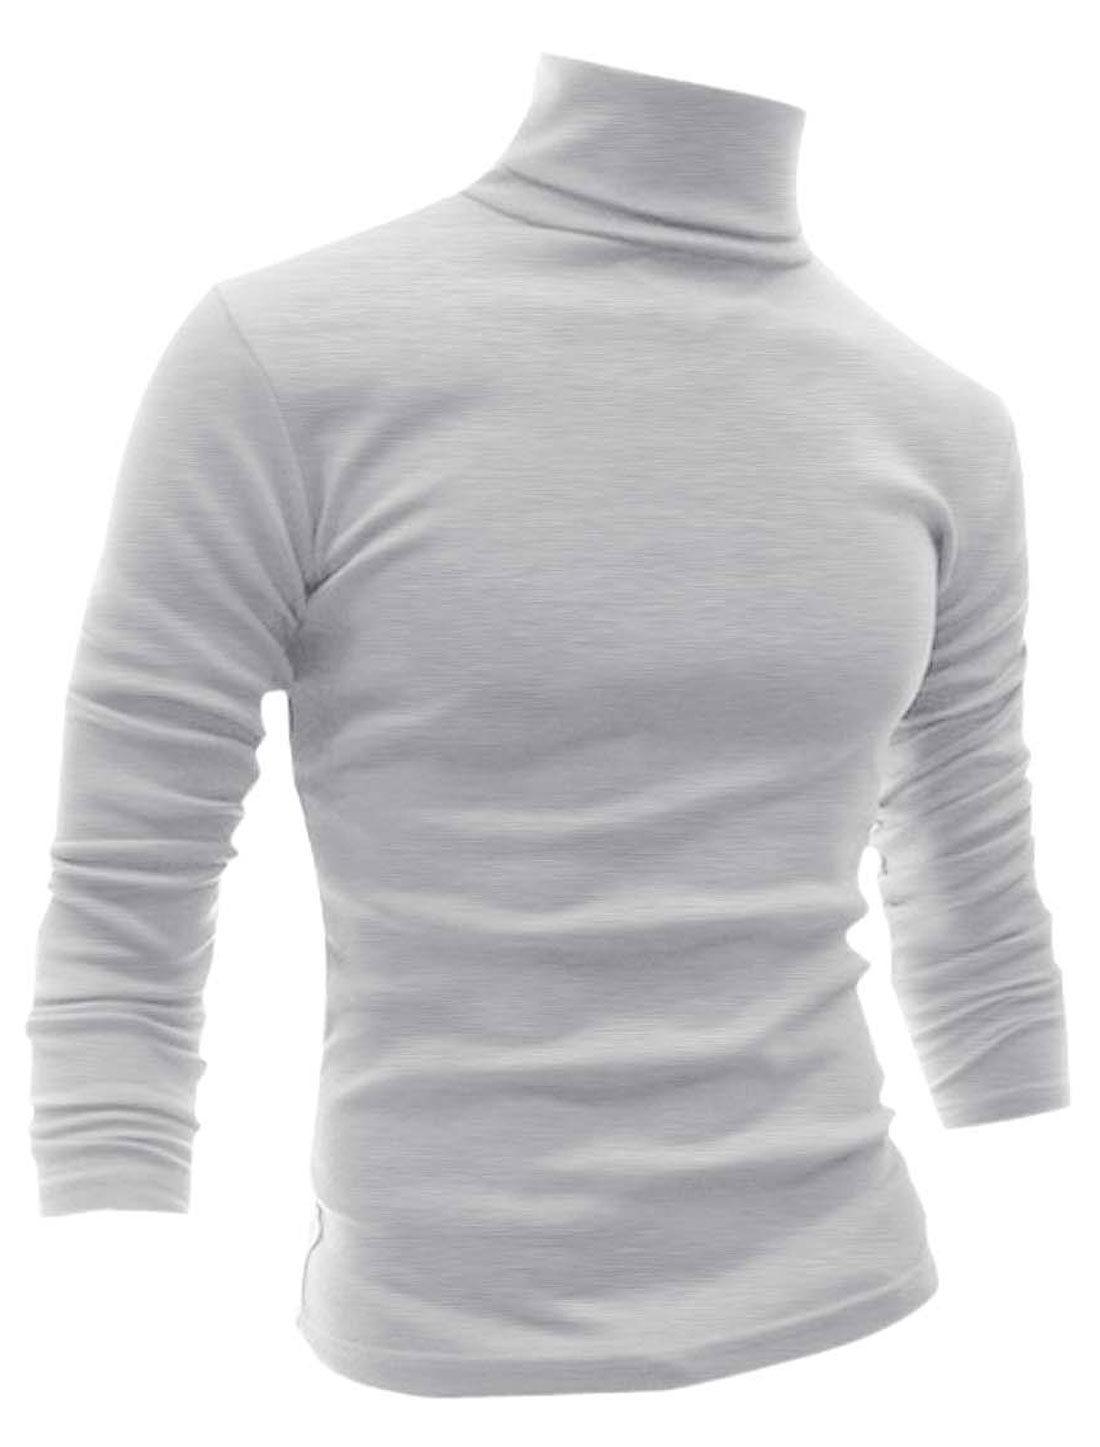 Men Long Sleeves Turtle Neck Slim Fit Tee Light Gray L